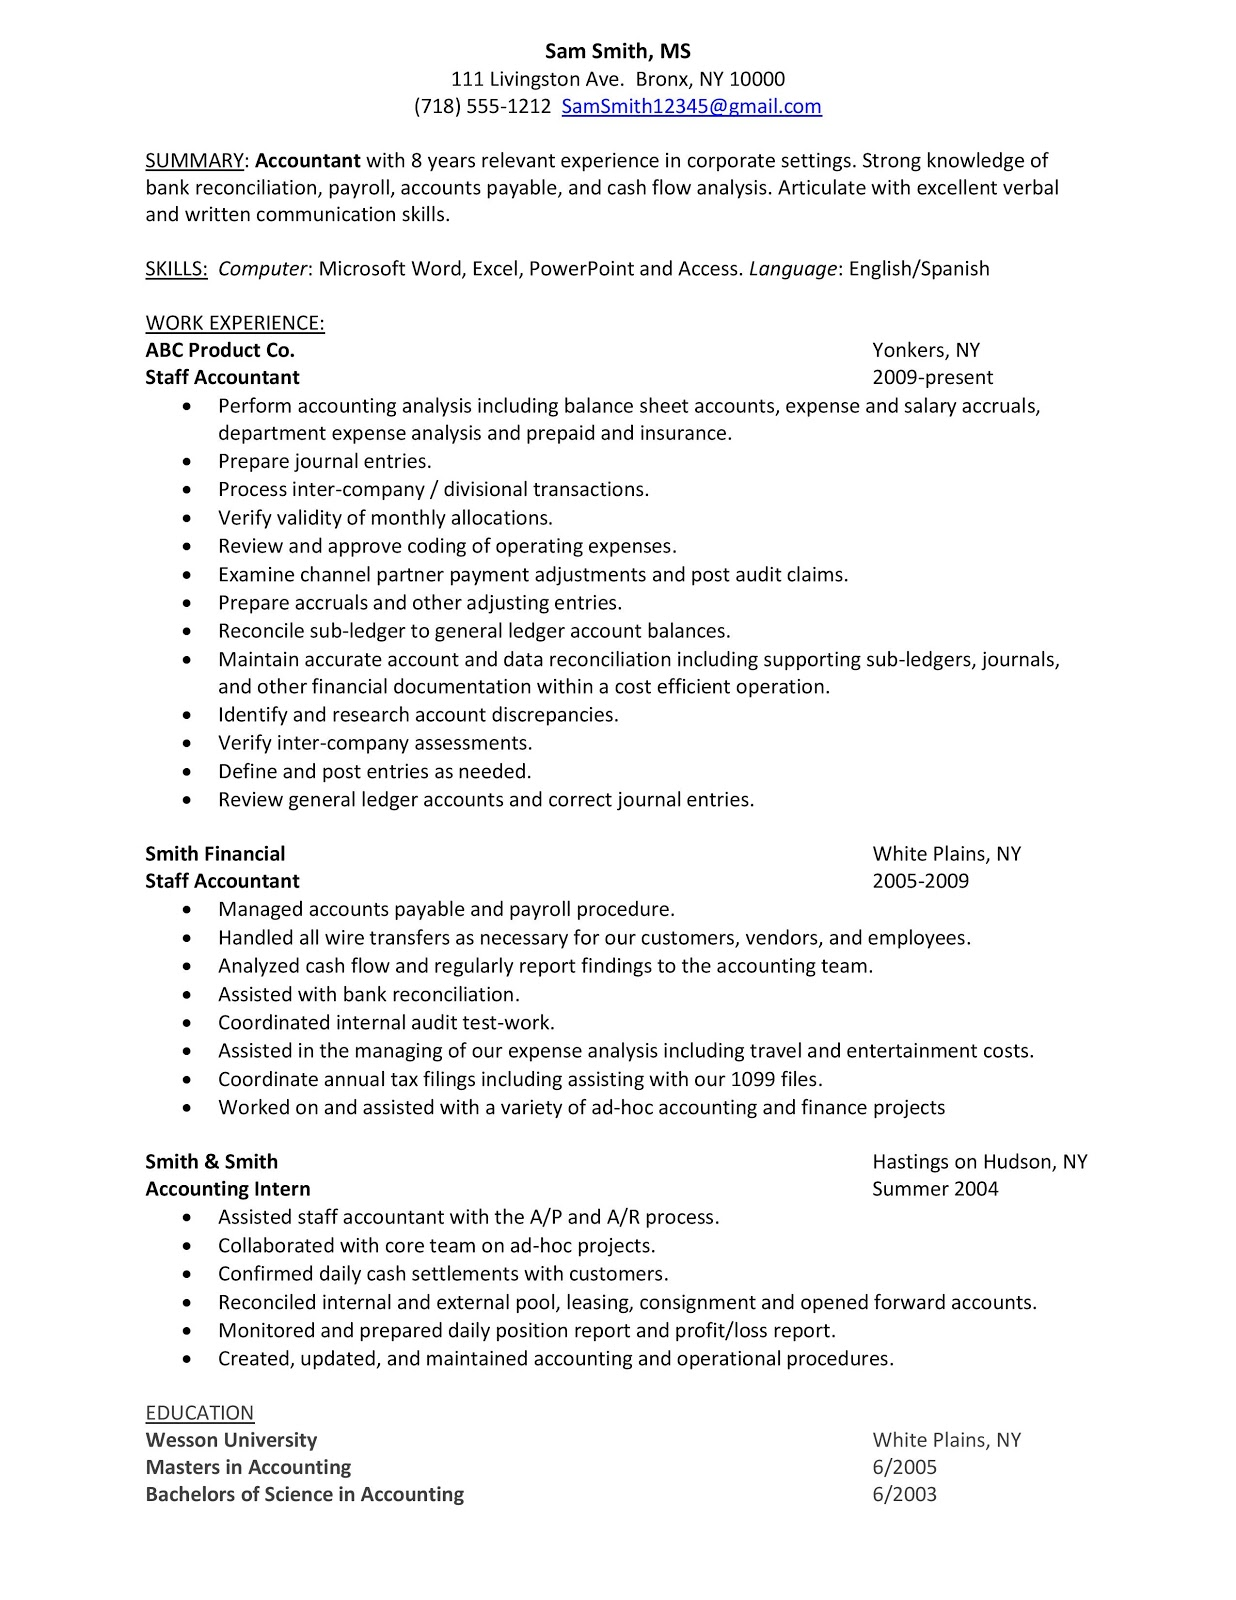 sample resume staff accountant - Staff Accountant Resume Sample